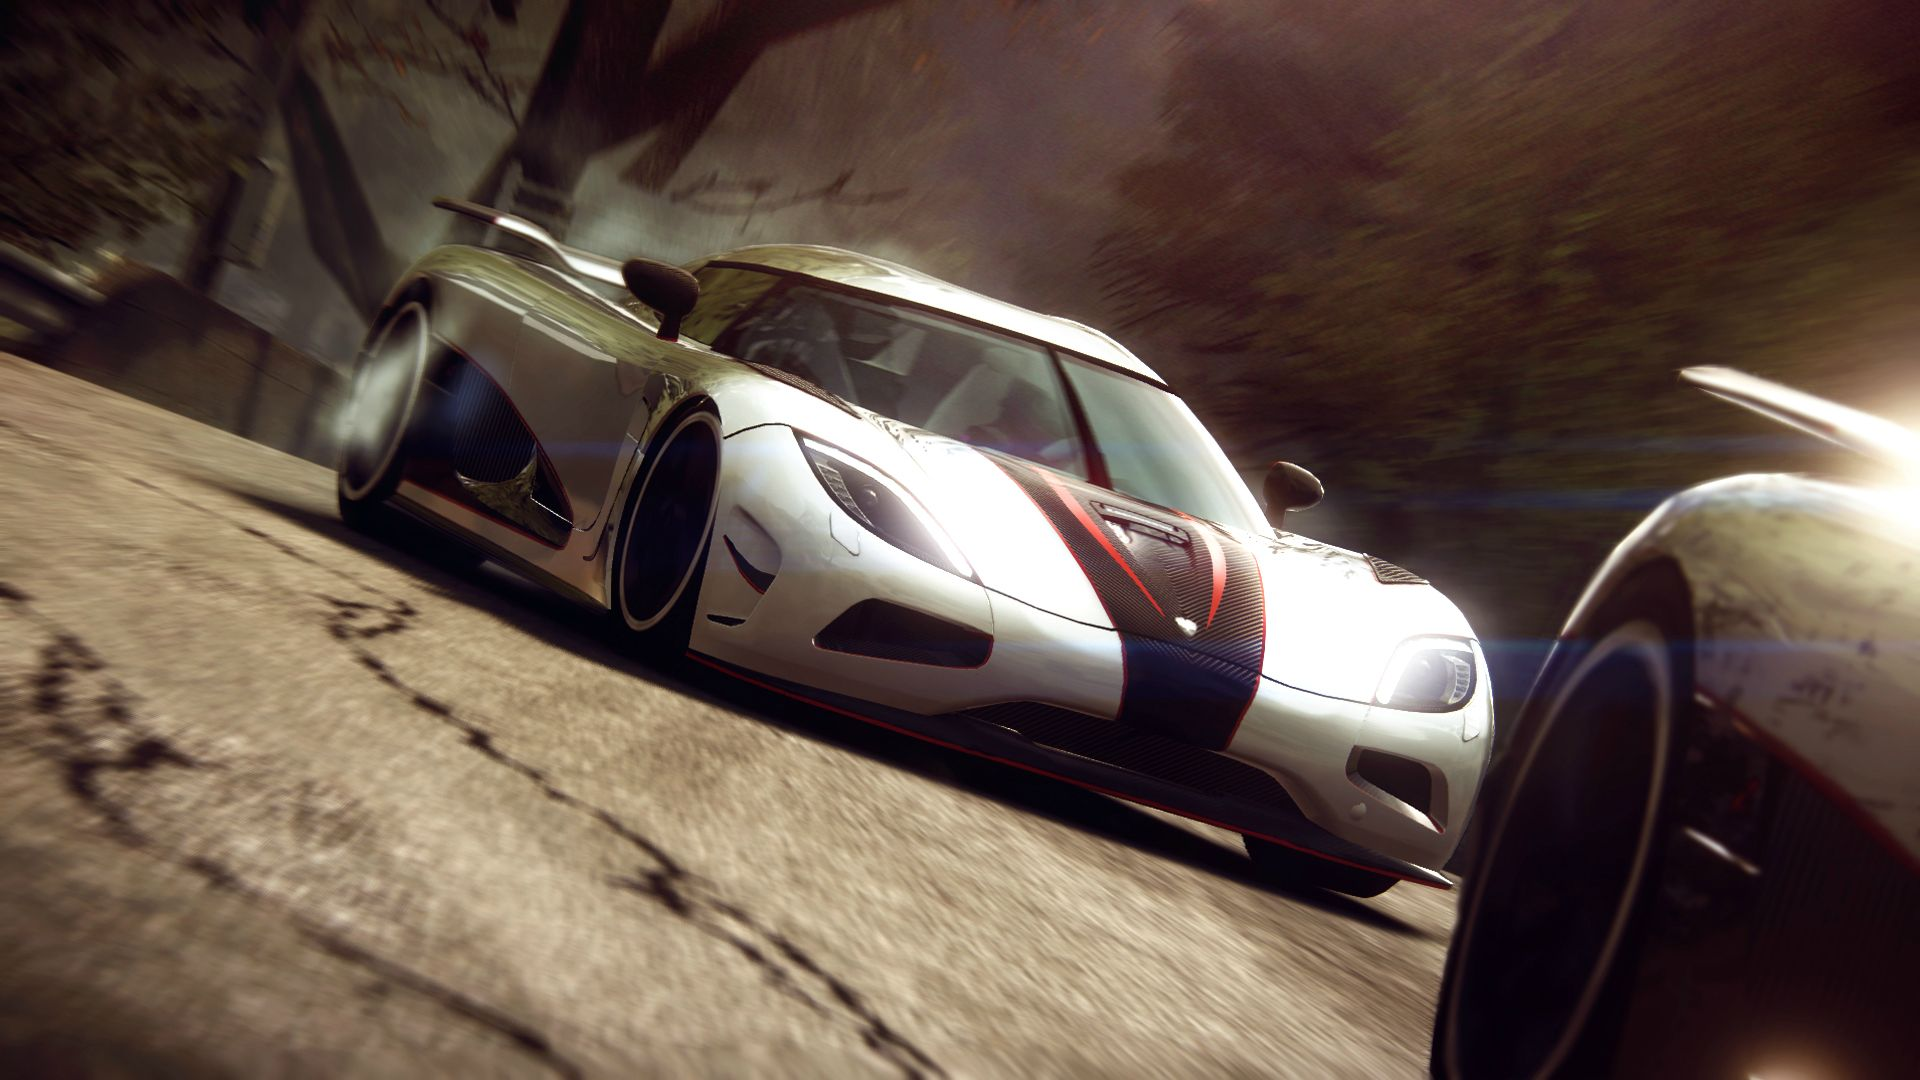 Grid 2 Game Wallpaper High Resolution Pics: Koenigsegg Agera R Full HD Wallpaper And Background Image